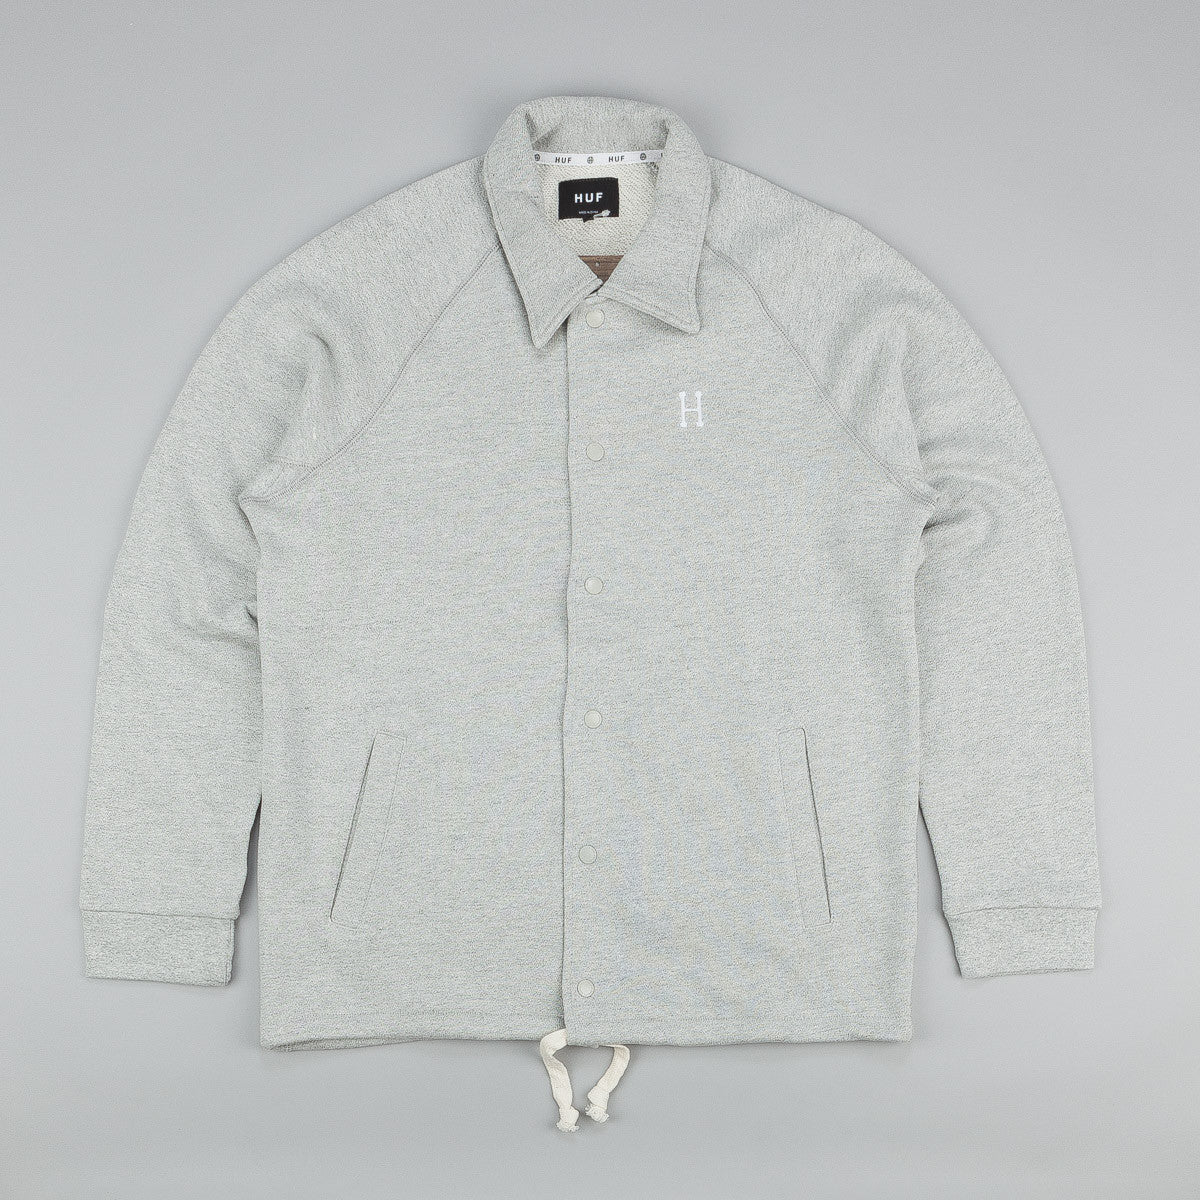 Huf Classic H Fleece Coaches Jacket